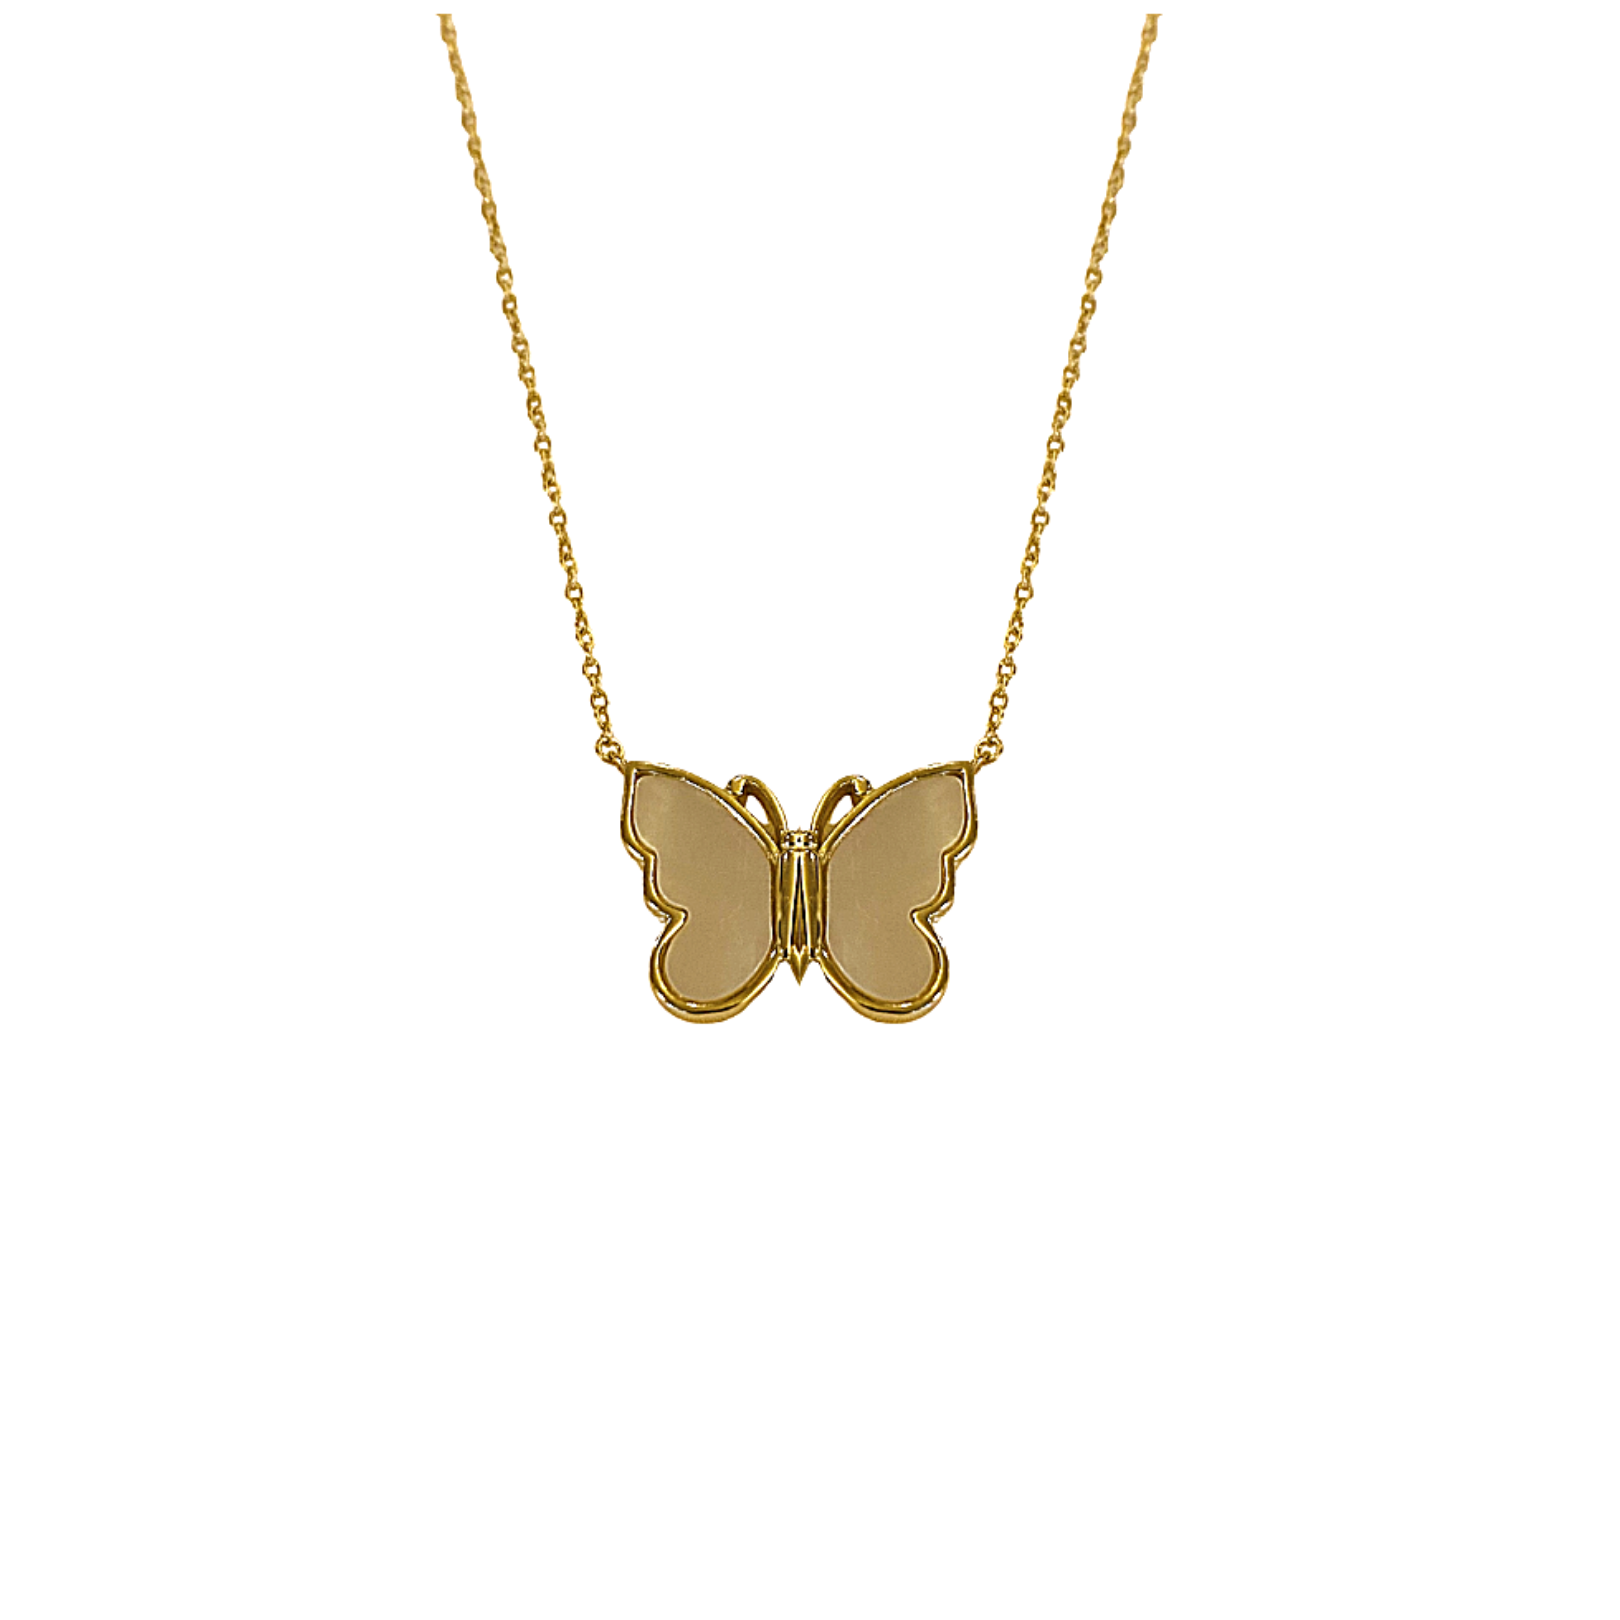 INLAID BUTTERFLY CHARM NECKLACE